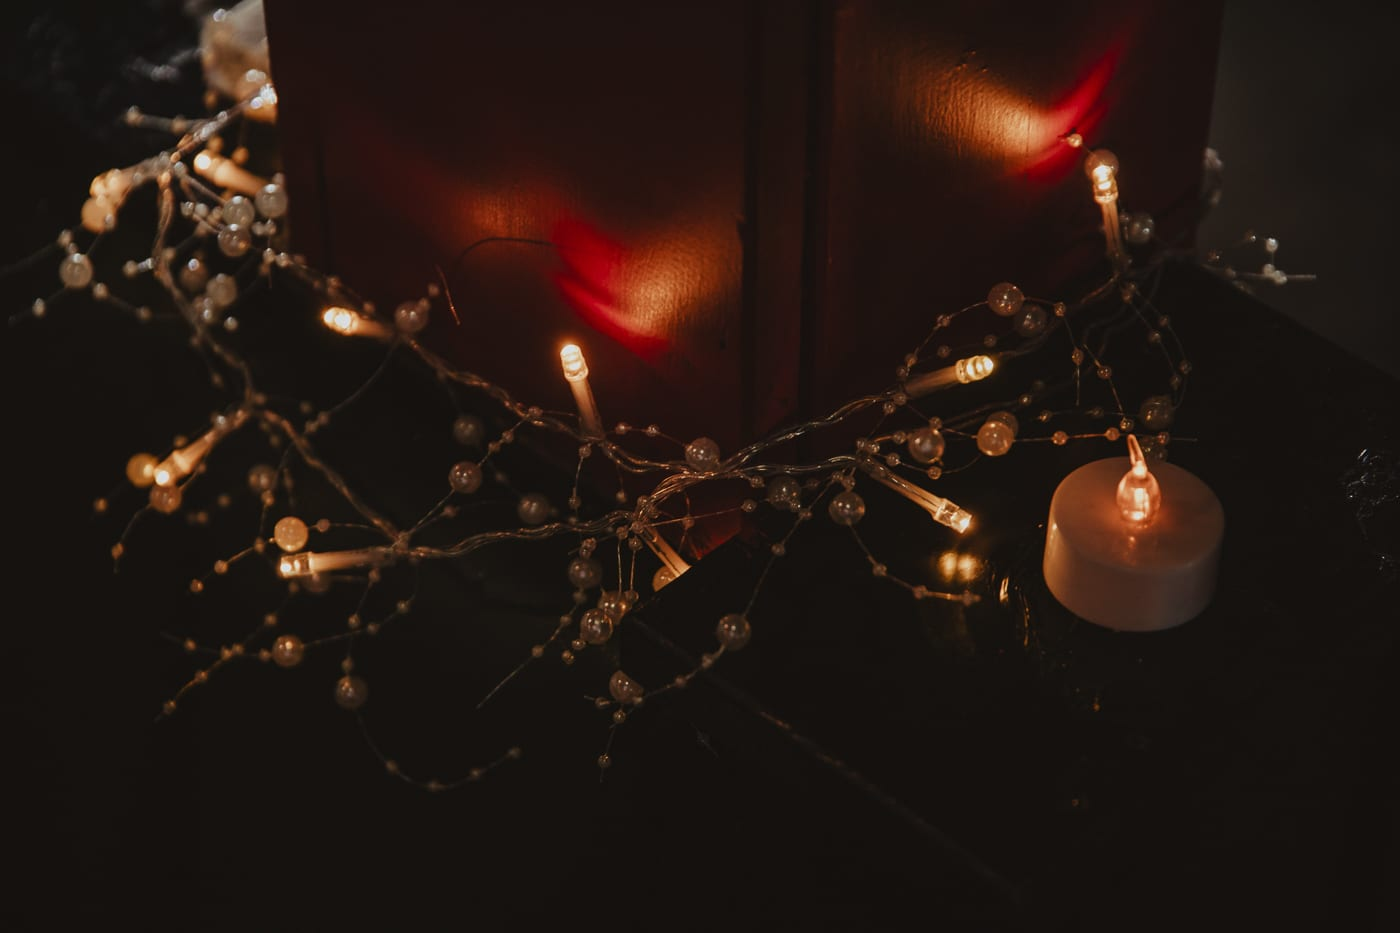 Fairy lights and candles by Joshua Wyborn